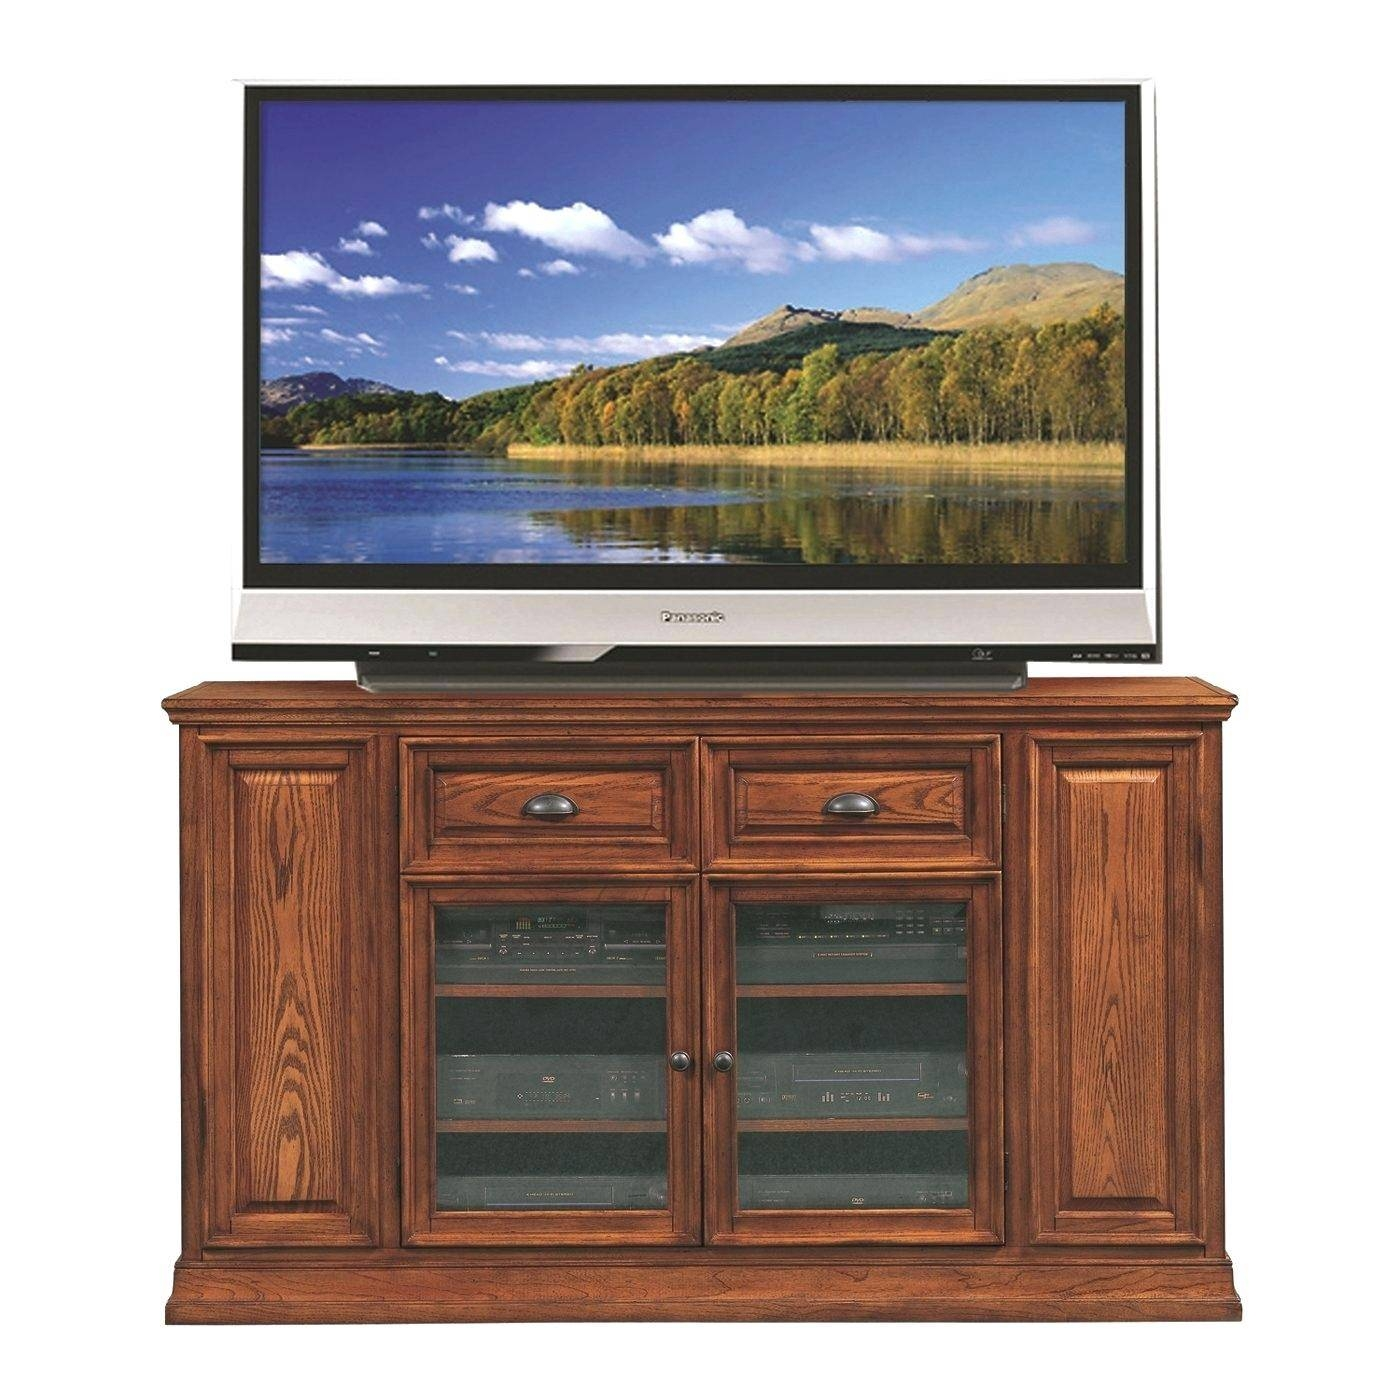 Tv Stand : Furniture Ideas Shaker Corner Tv Stand With Dvd Opening regarding Maple Wood Tv Stands (Image 7 of 15)